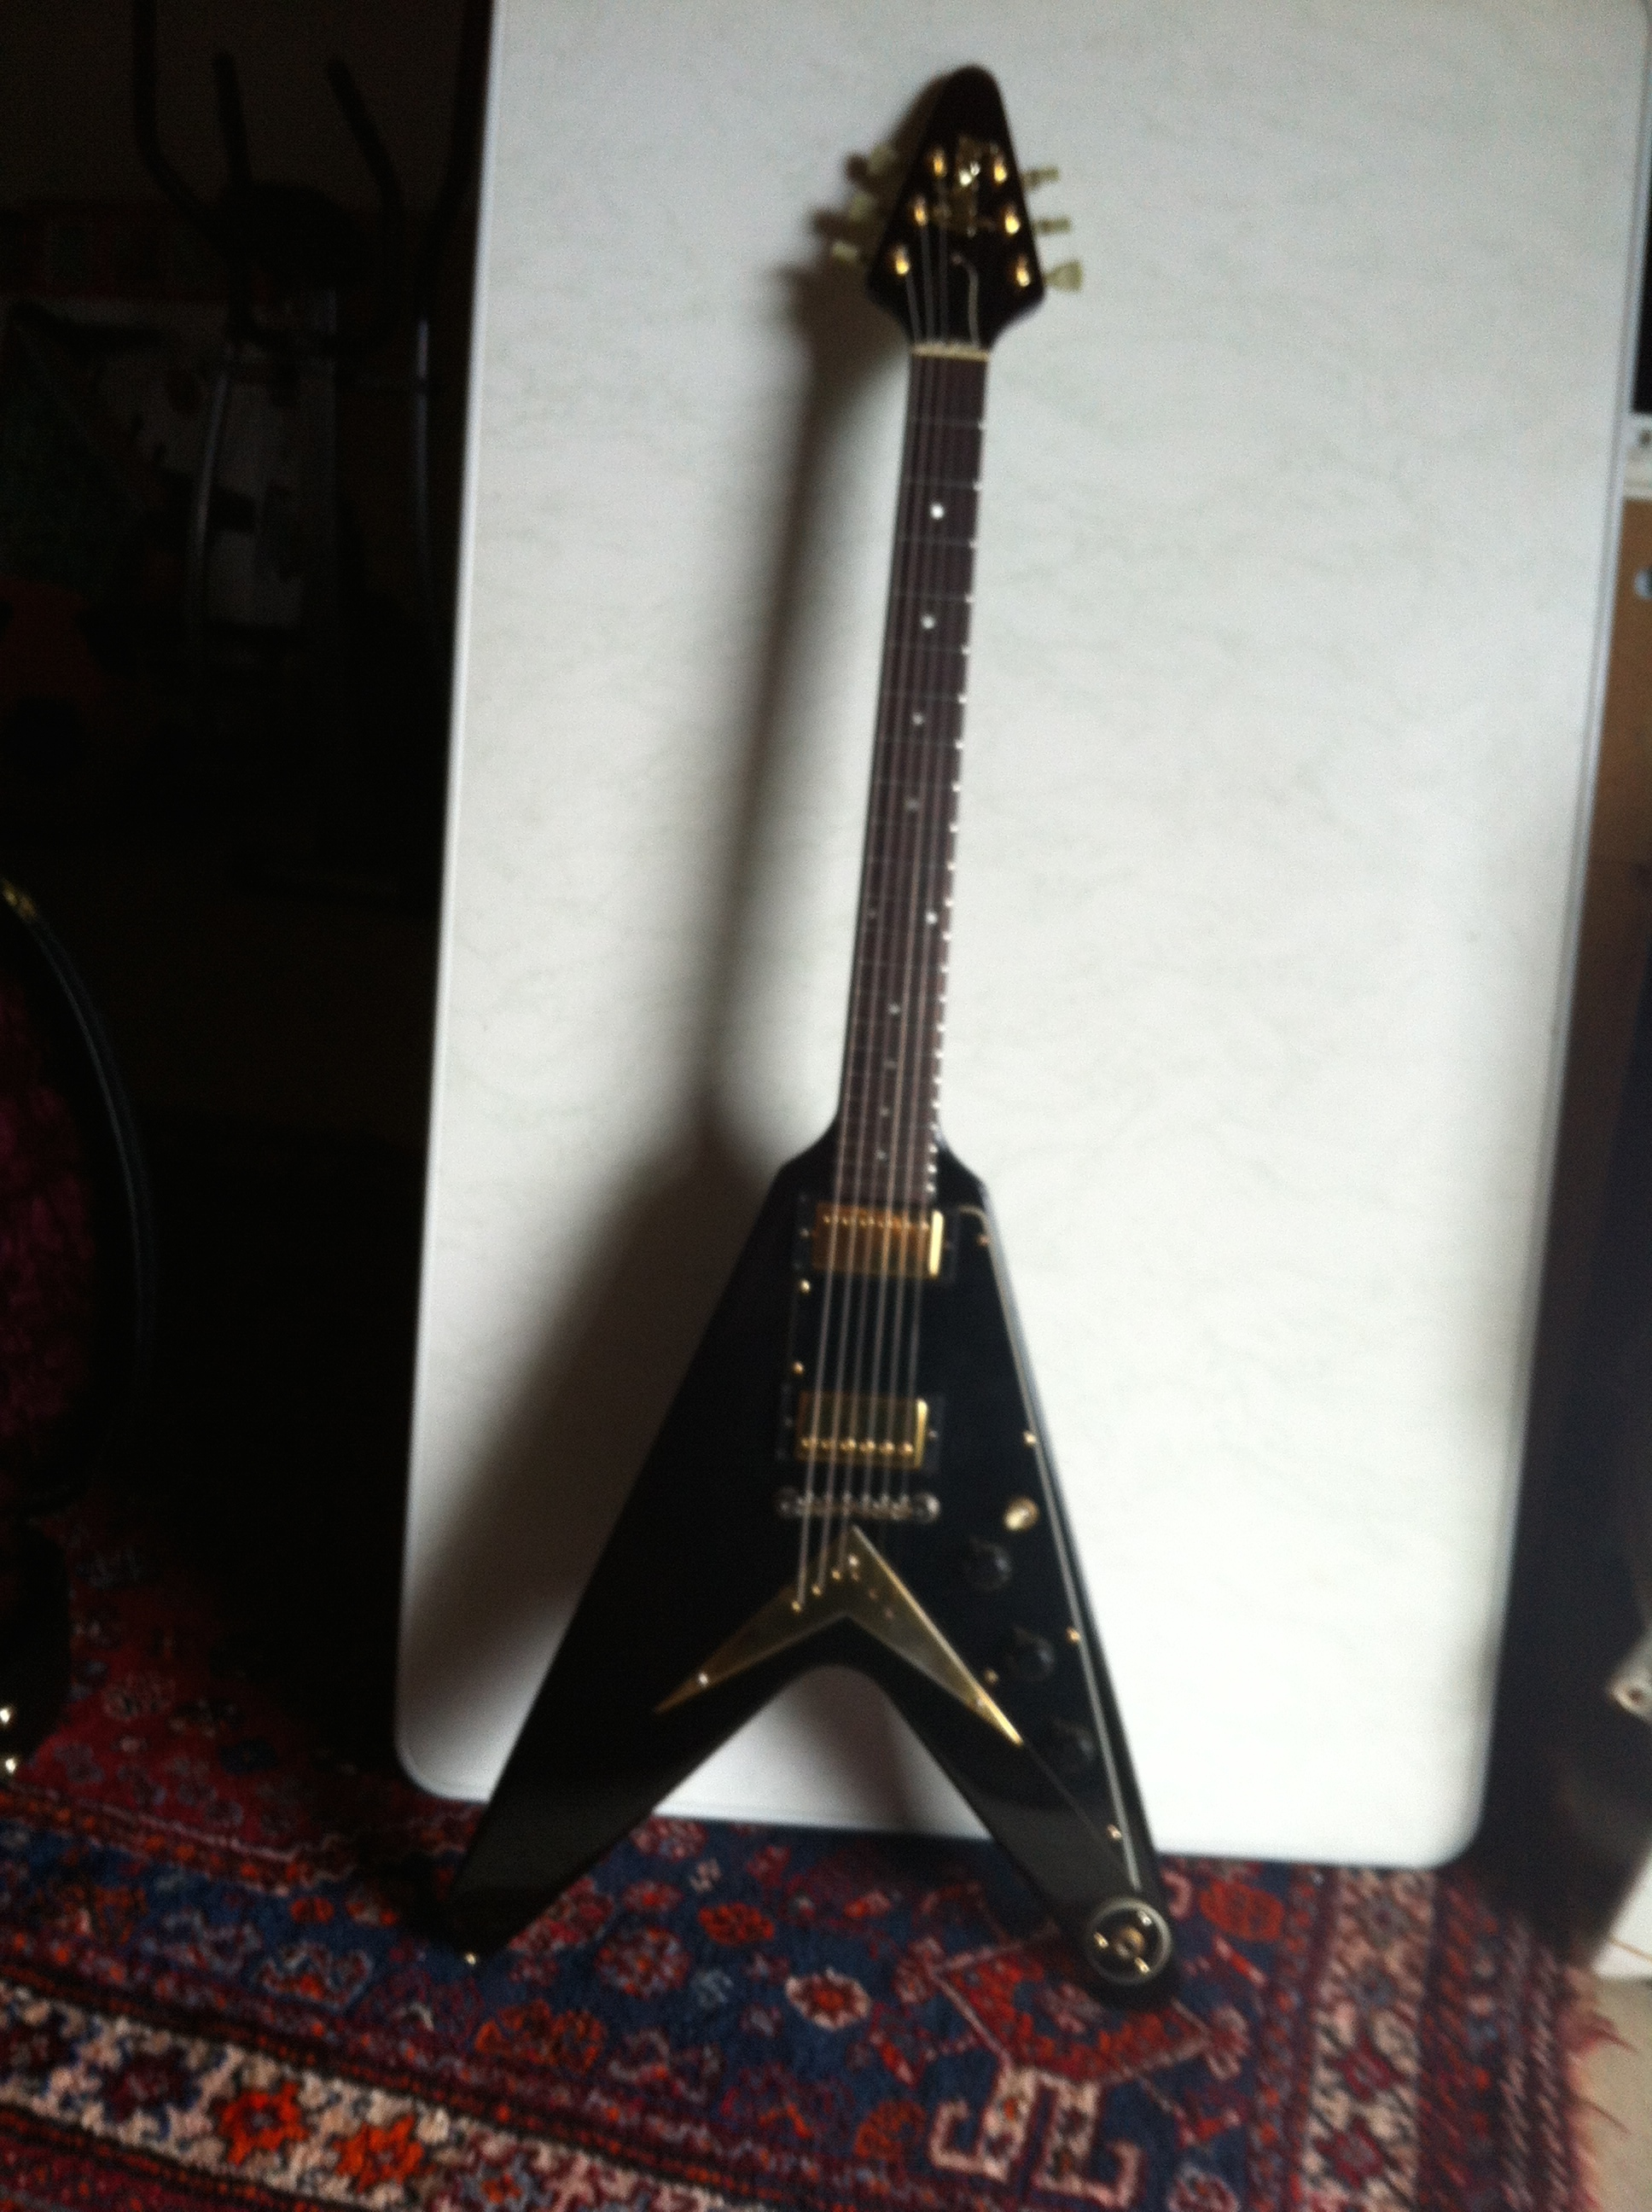 gibson flying v 58 korina 1983 black guitar for sale. Black Bedroom Furniture Sets. Home Design Ideas